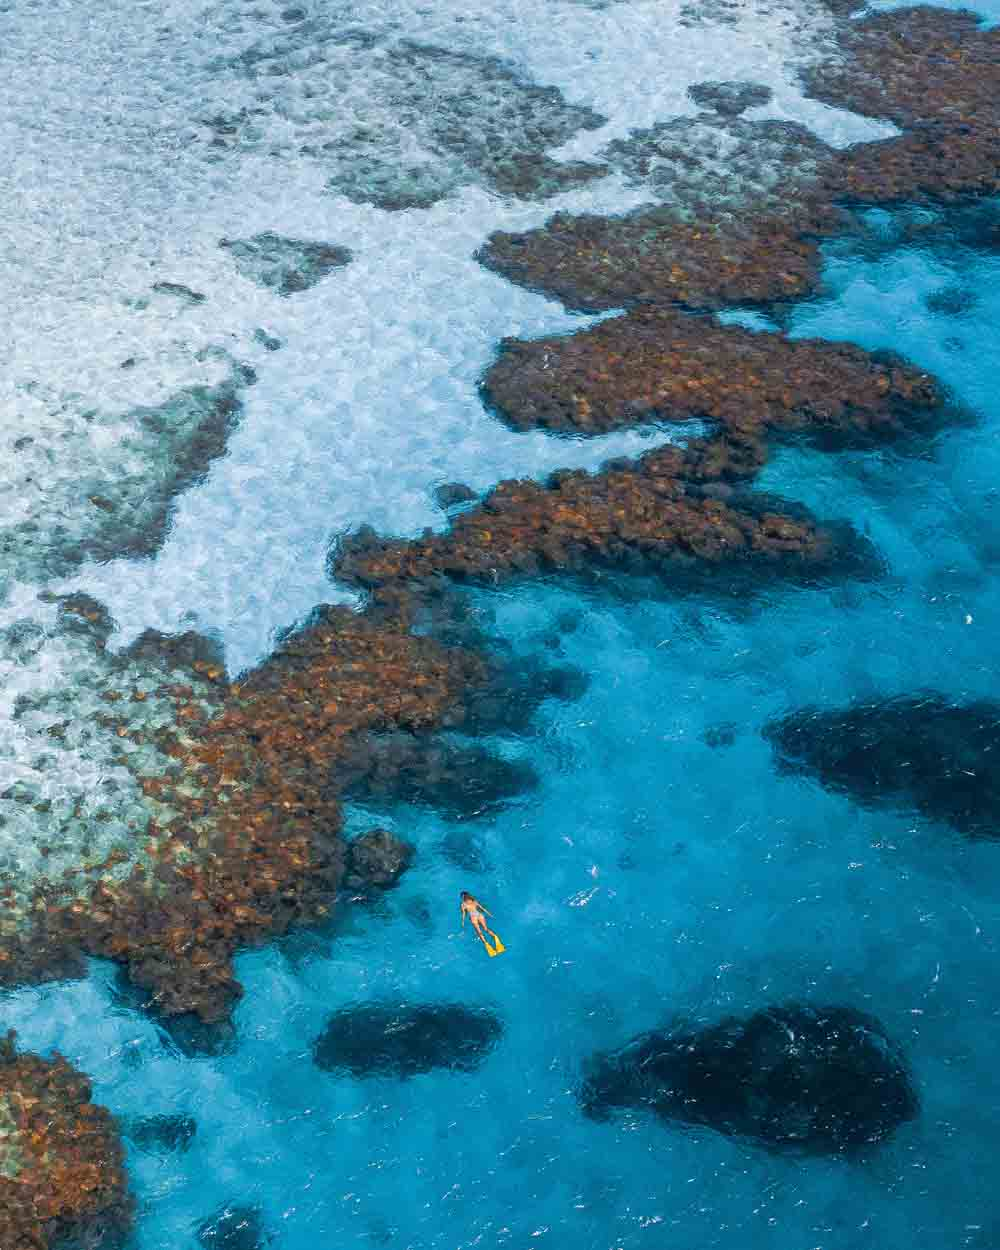 Birds-eye view of a female snorkeller in the water at Lodestone Reef